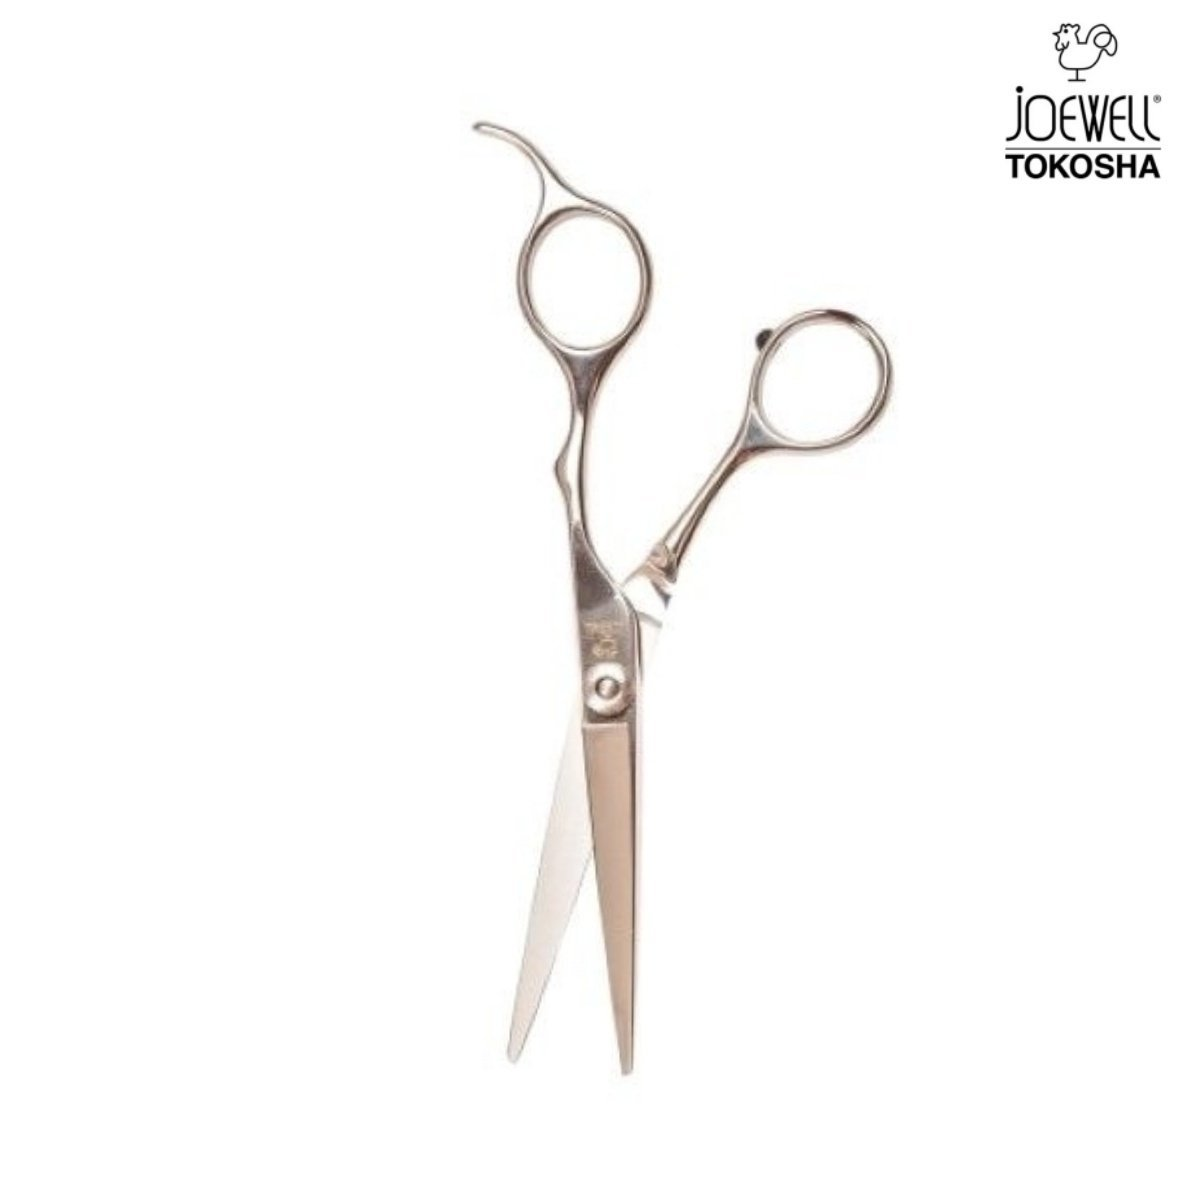 Joewell Ergo ZII Hair Scissor - Japan Scissors